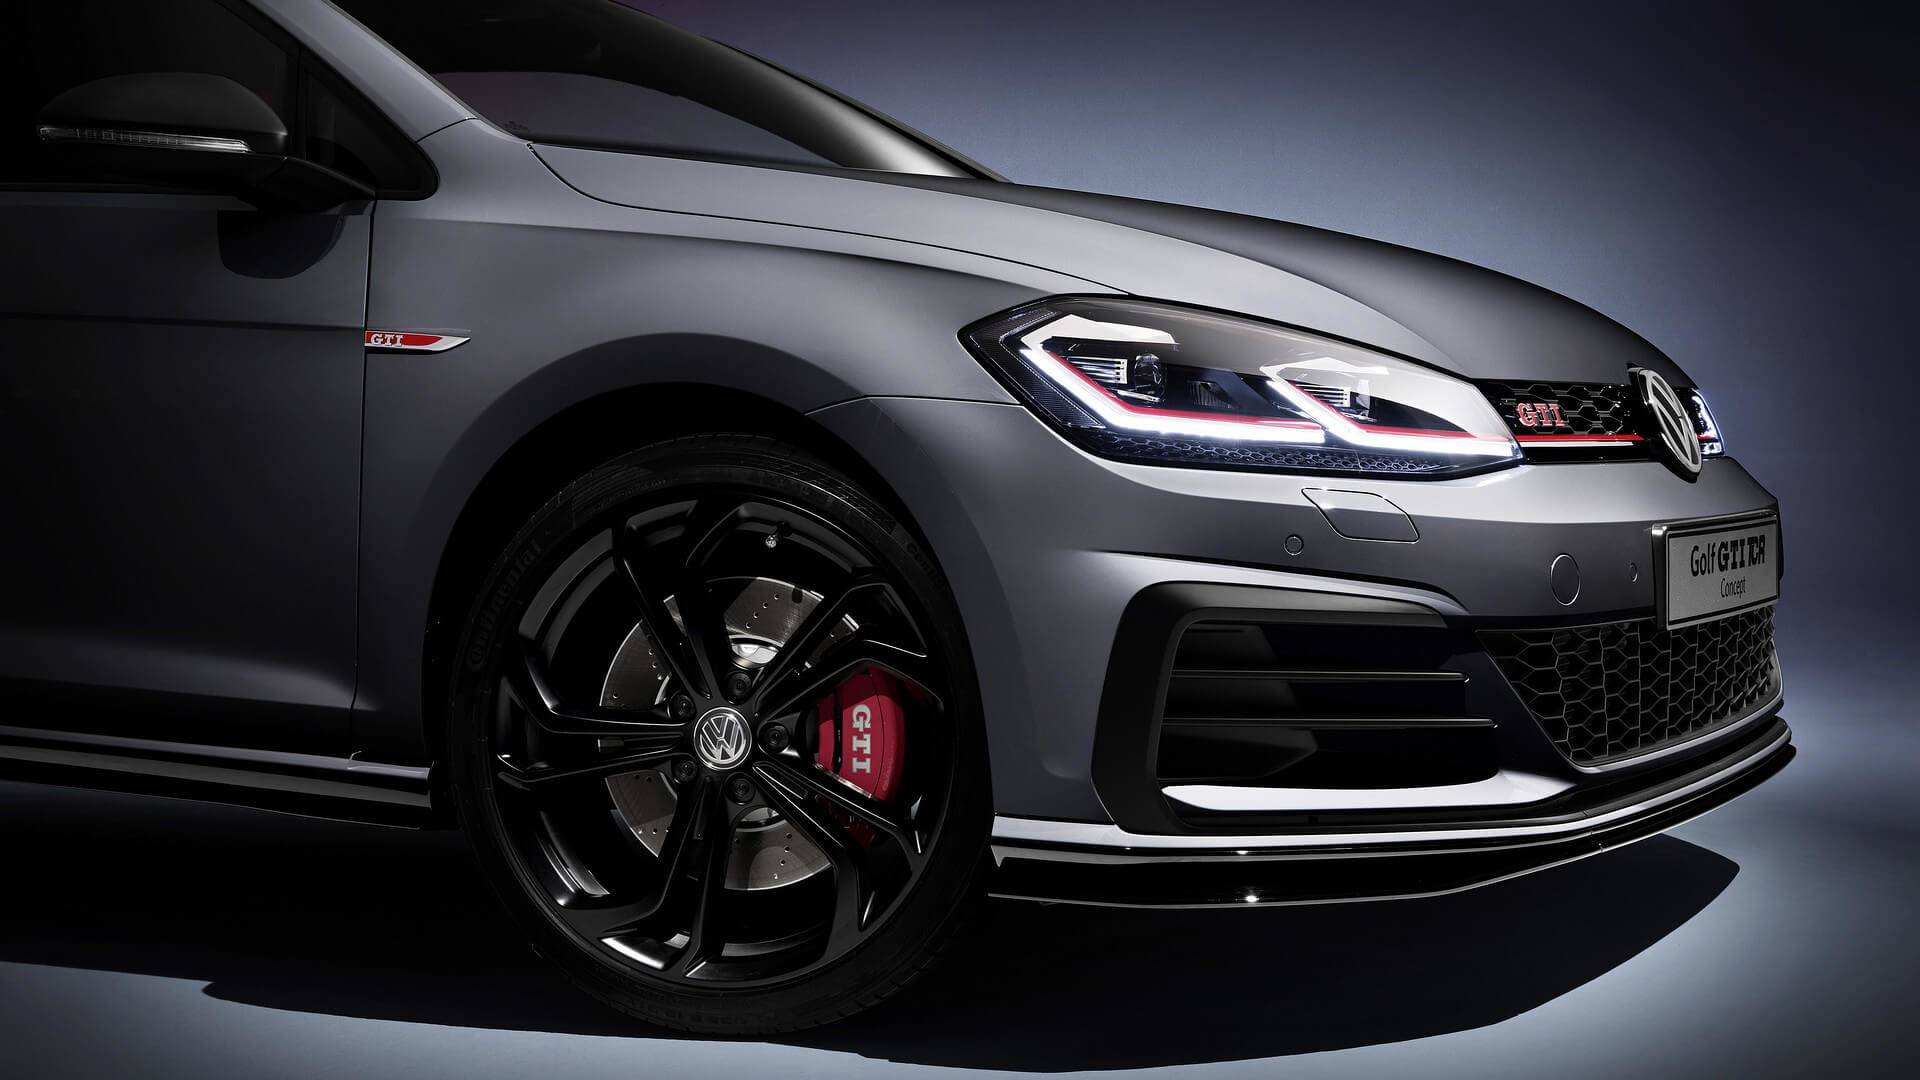 2018-vw-golf-gti-tcr-concept (3)